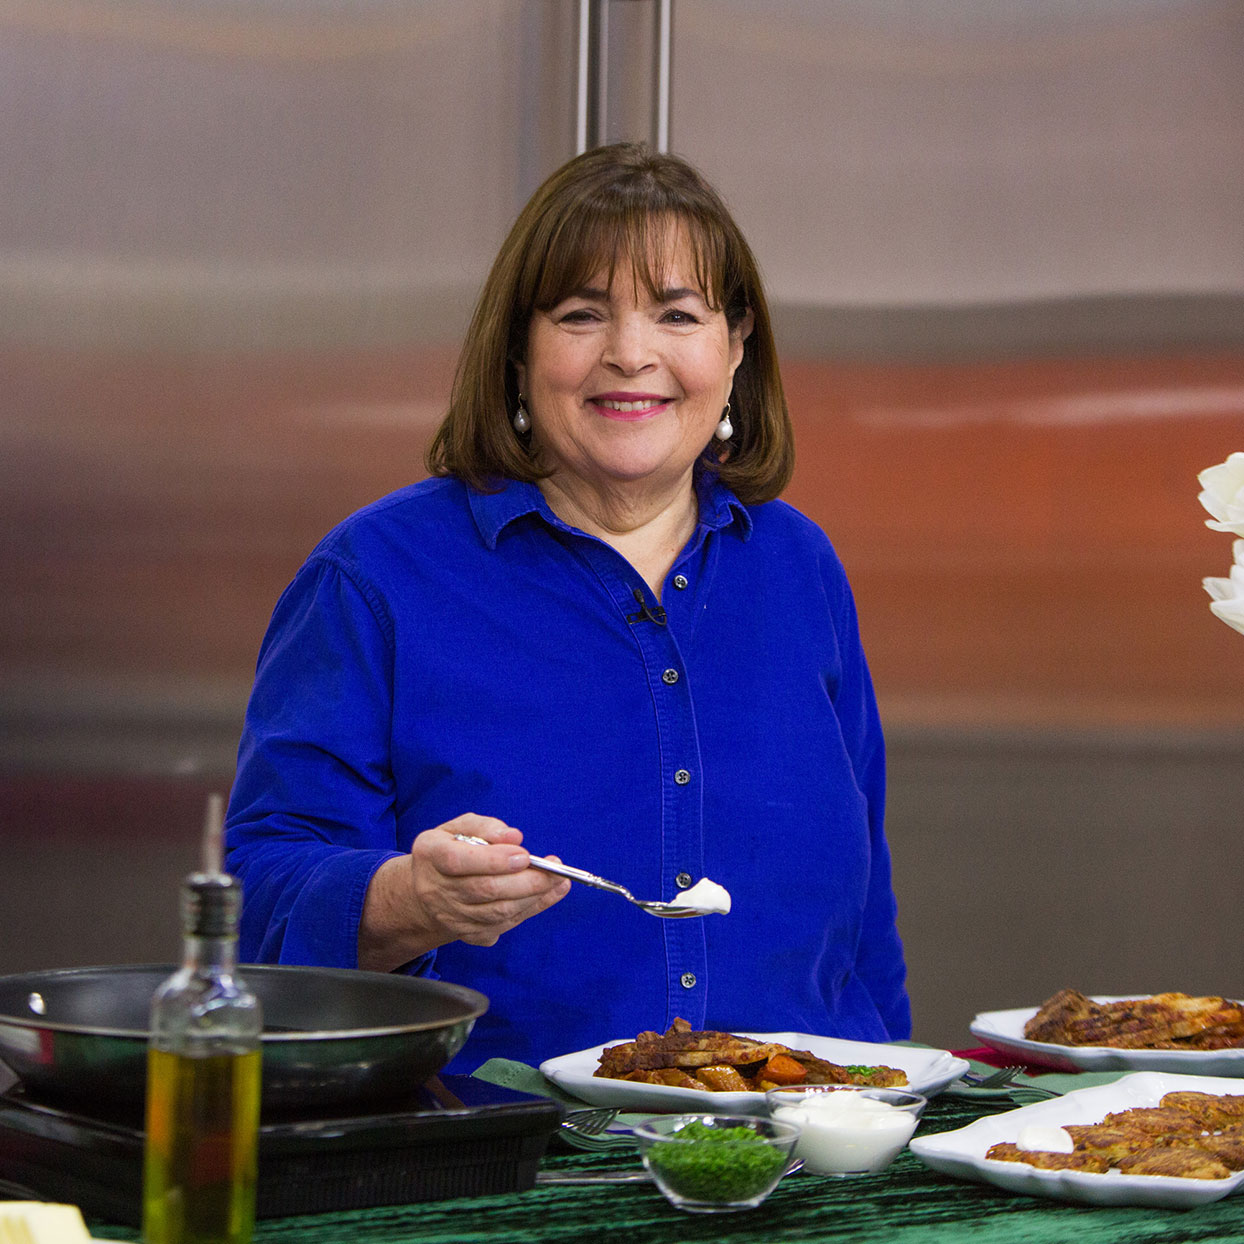 Ina Garten's Favorite Fall Lunch Is Actually Super Easy to Make